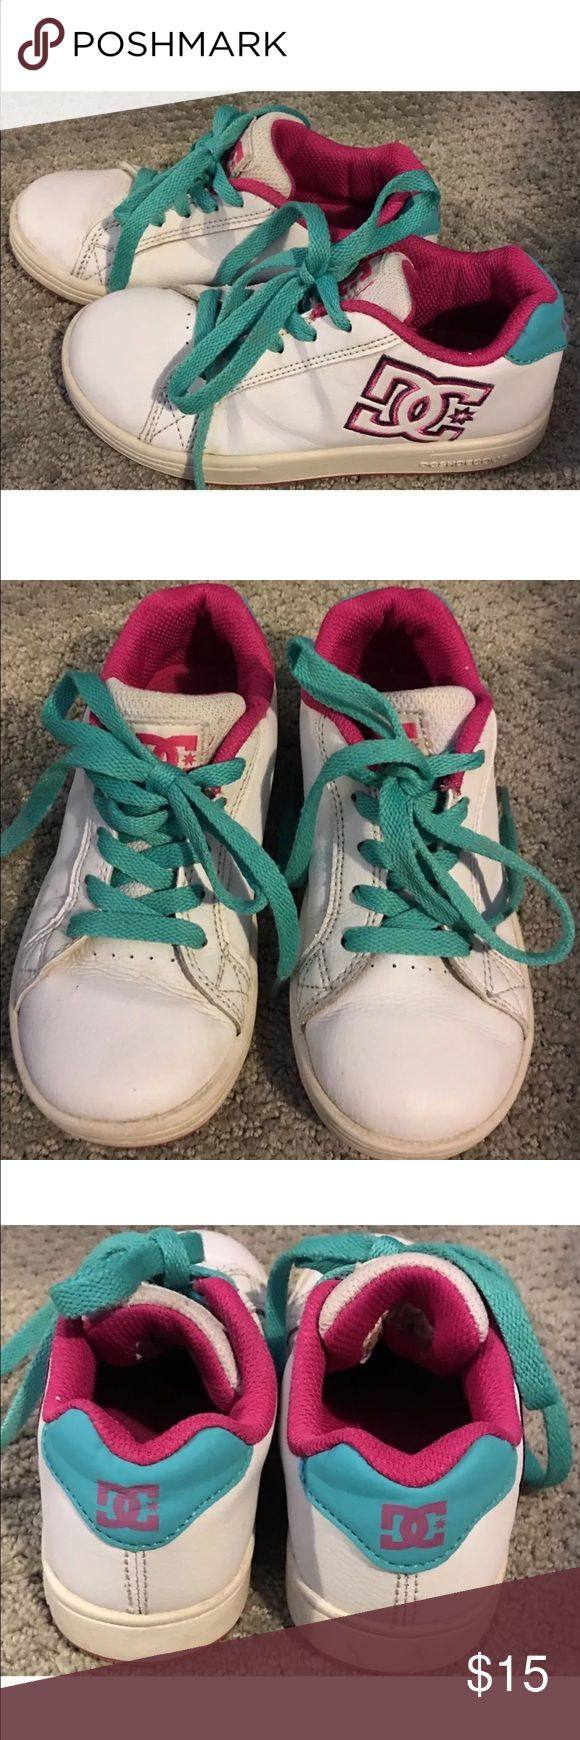 DC SKATE SHOES, SZ YOUTH 13, LEATHER w/DC LOGO DC BRAND KIDS SKATE SHOES.                          SZ YOUTH 13.                                               BASE WHITE LEATHER WITH MULTI-COLORED (HOT PINK &TEAL) LEATHER BLOCKING.                                        HAS EMBROIDERED DC LOGO.                              BRIGHT COLORS AND A NICE PAIR OF SHOES. DC Skate  Shoes Sneakers